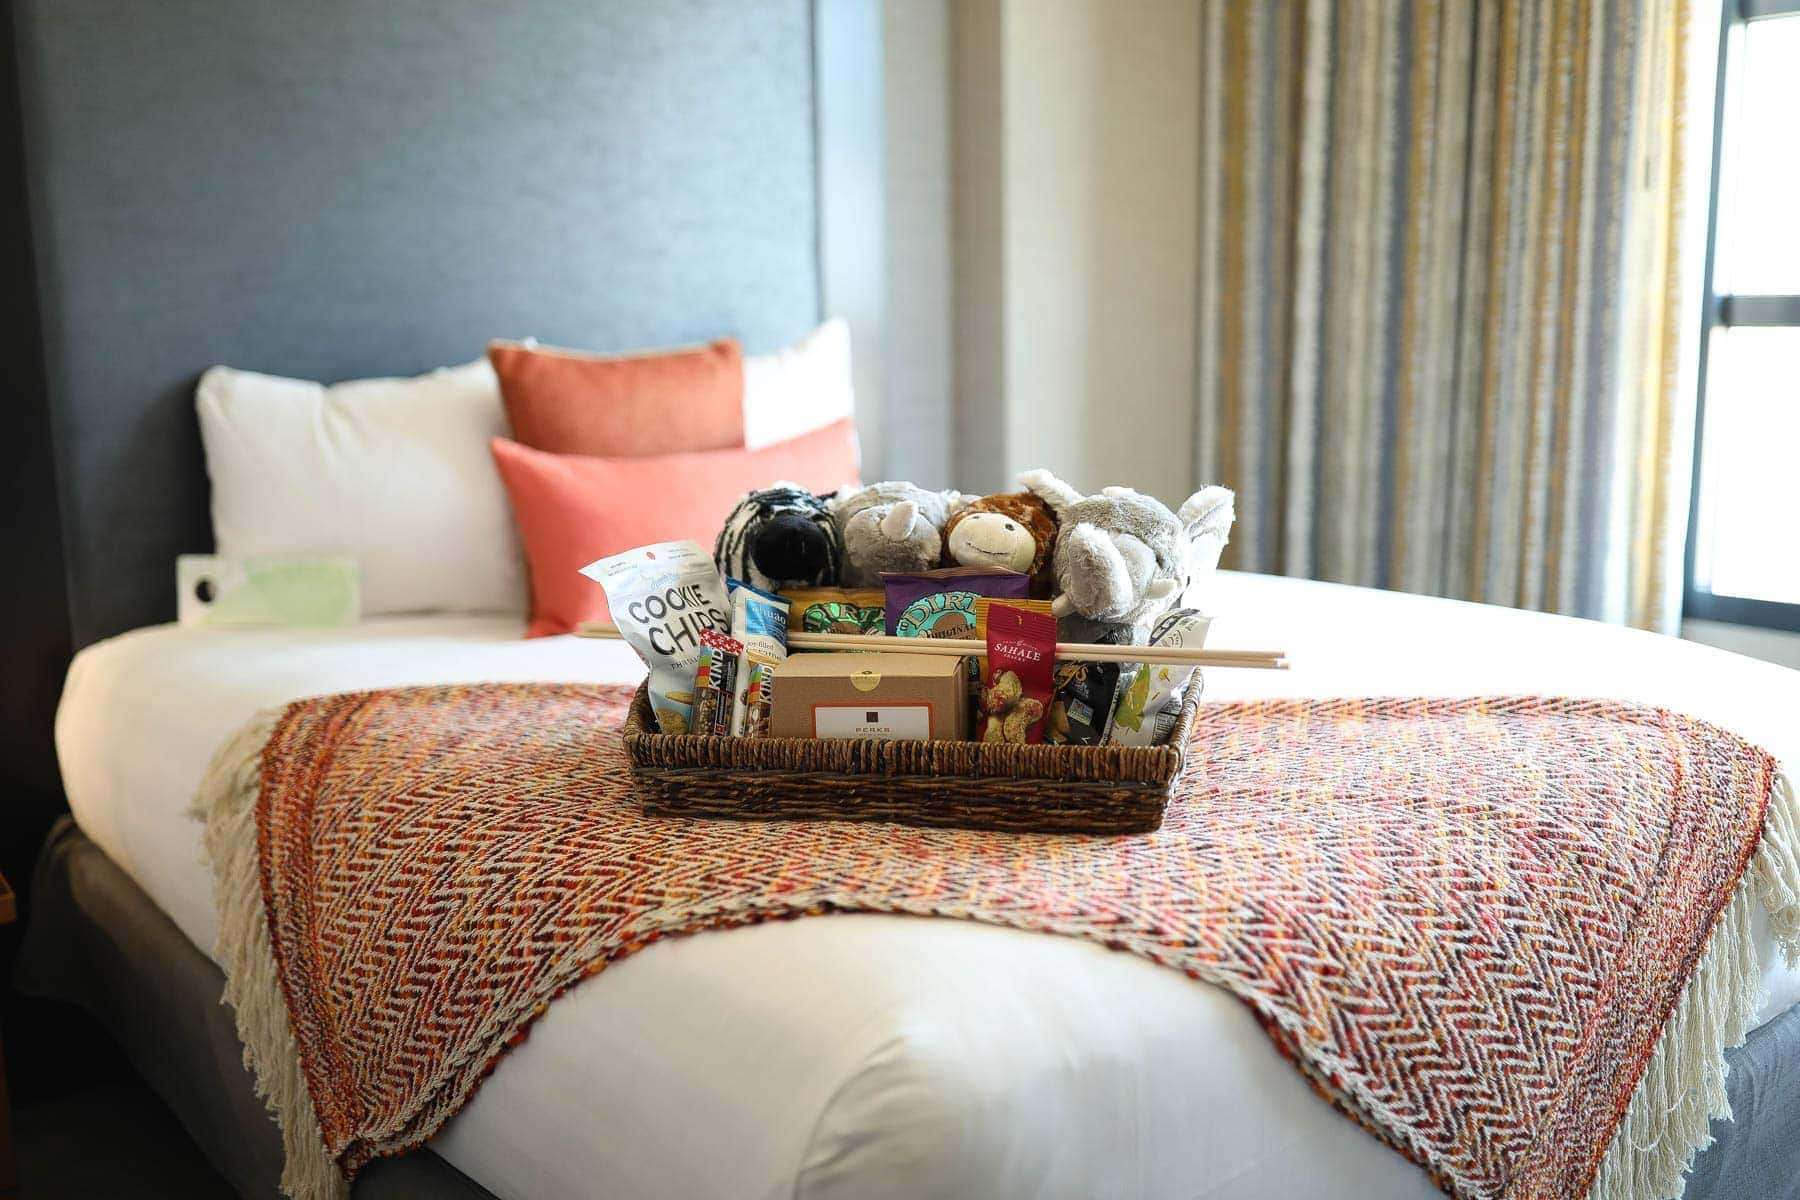 Kid Friendly Bedroom #citygirlgonemom #hyattregency #lajollasandiego #lajolla